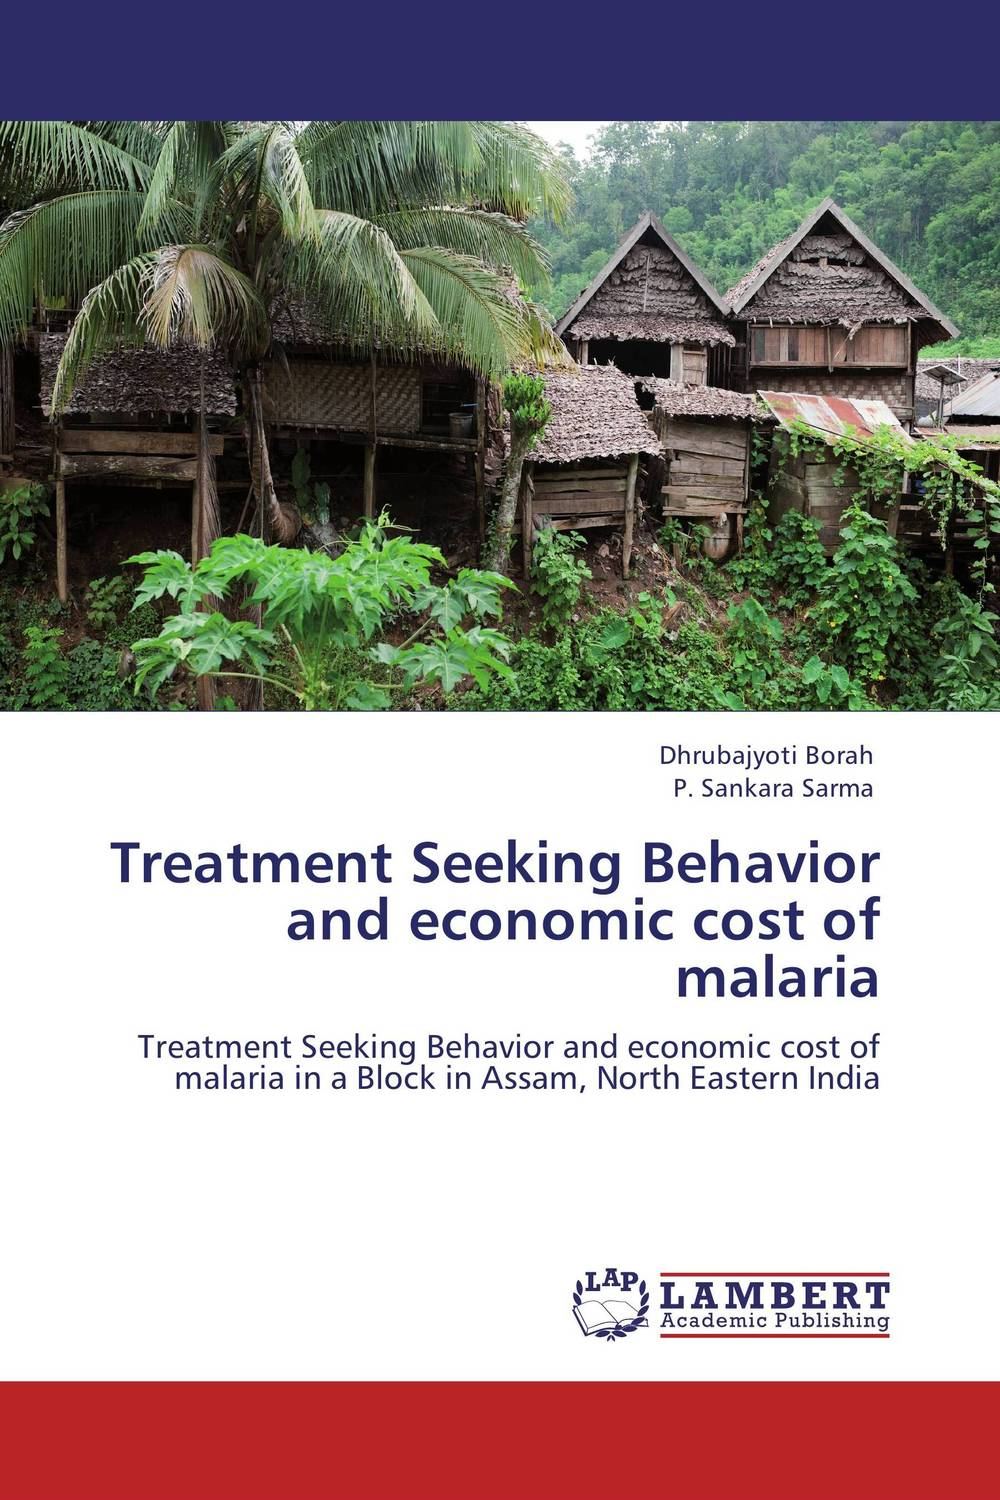 Treatment Seeking Behavior and economic cost of malaria verne j journey to the centre of the earth